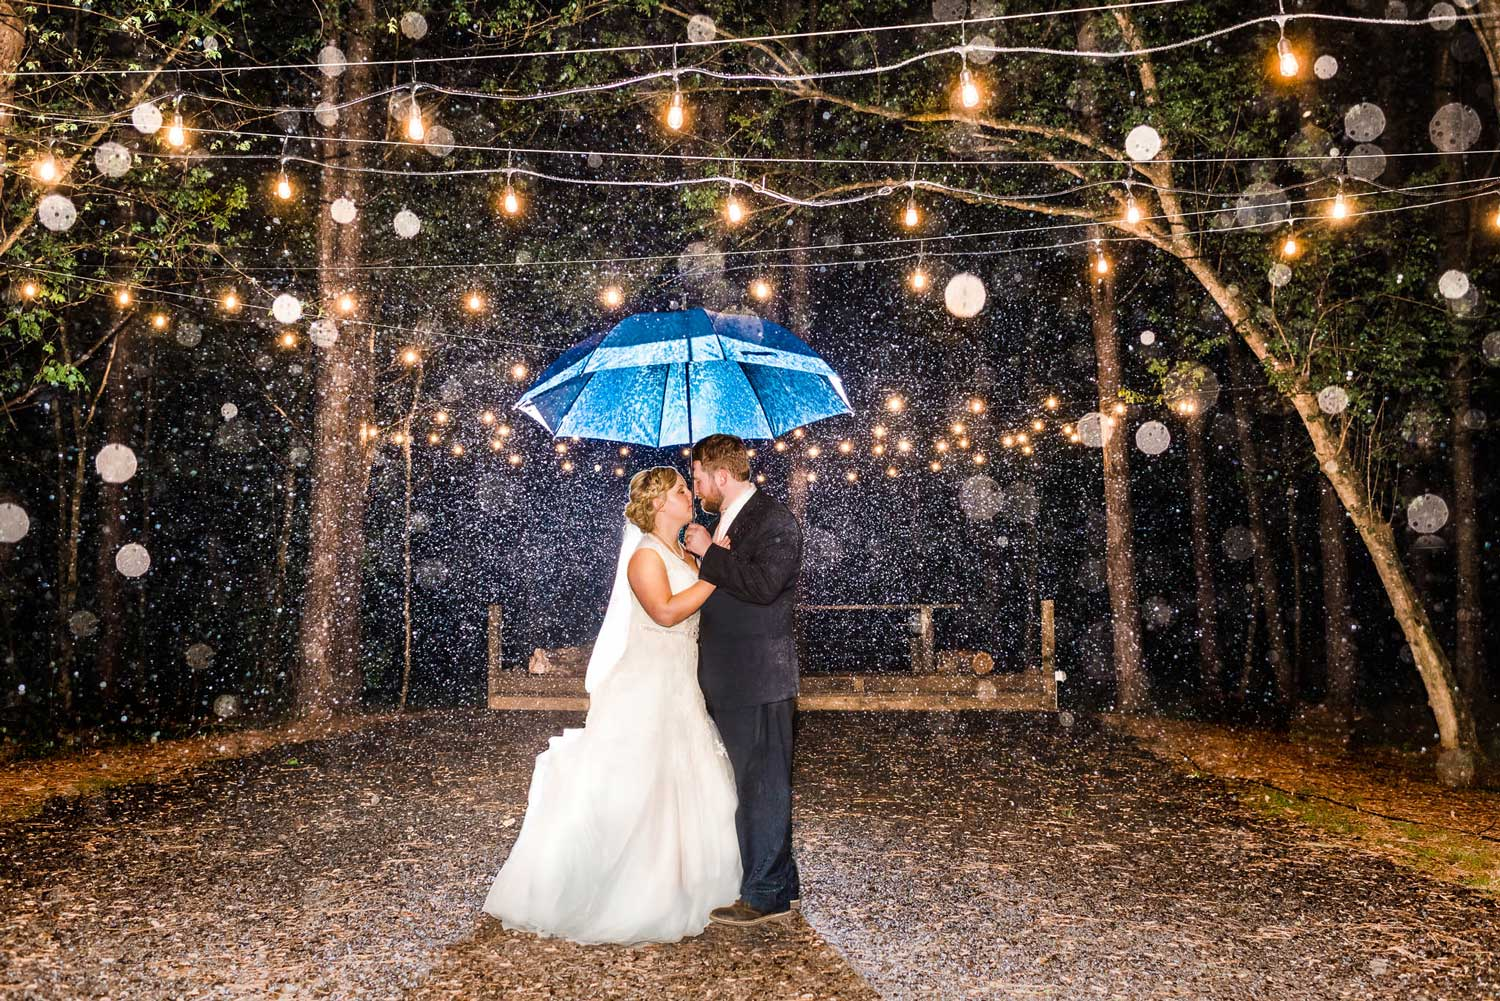 wedding couple under blue umbrella in the rain at the forest ceremony site at Hiwassee River weddings.